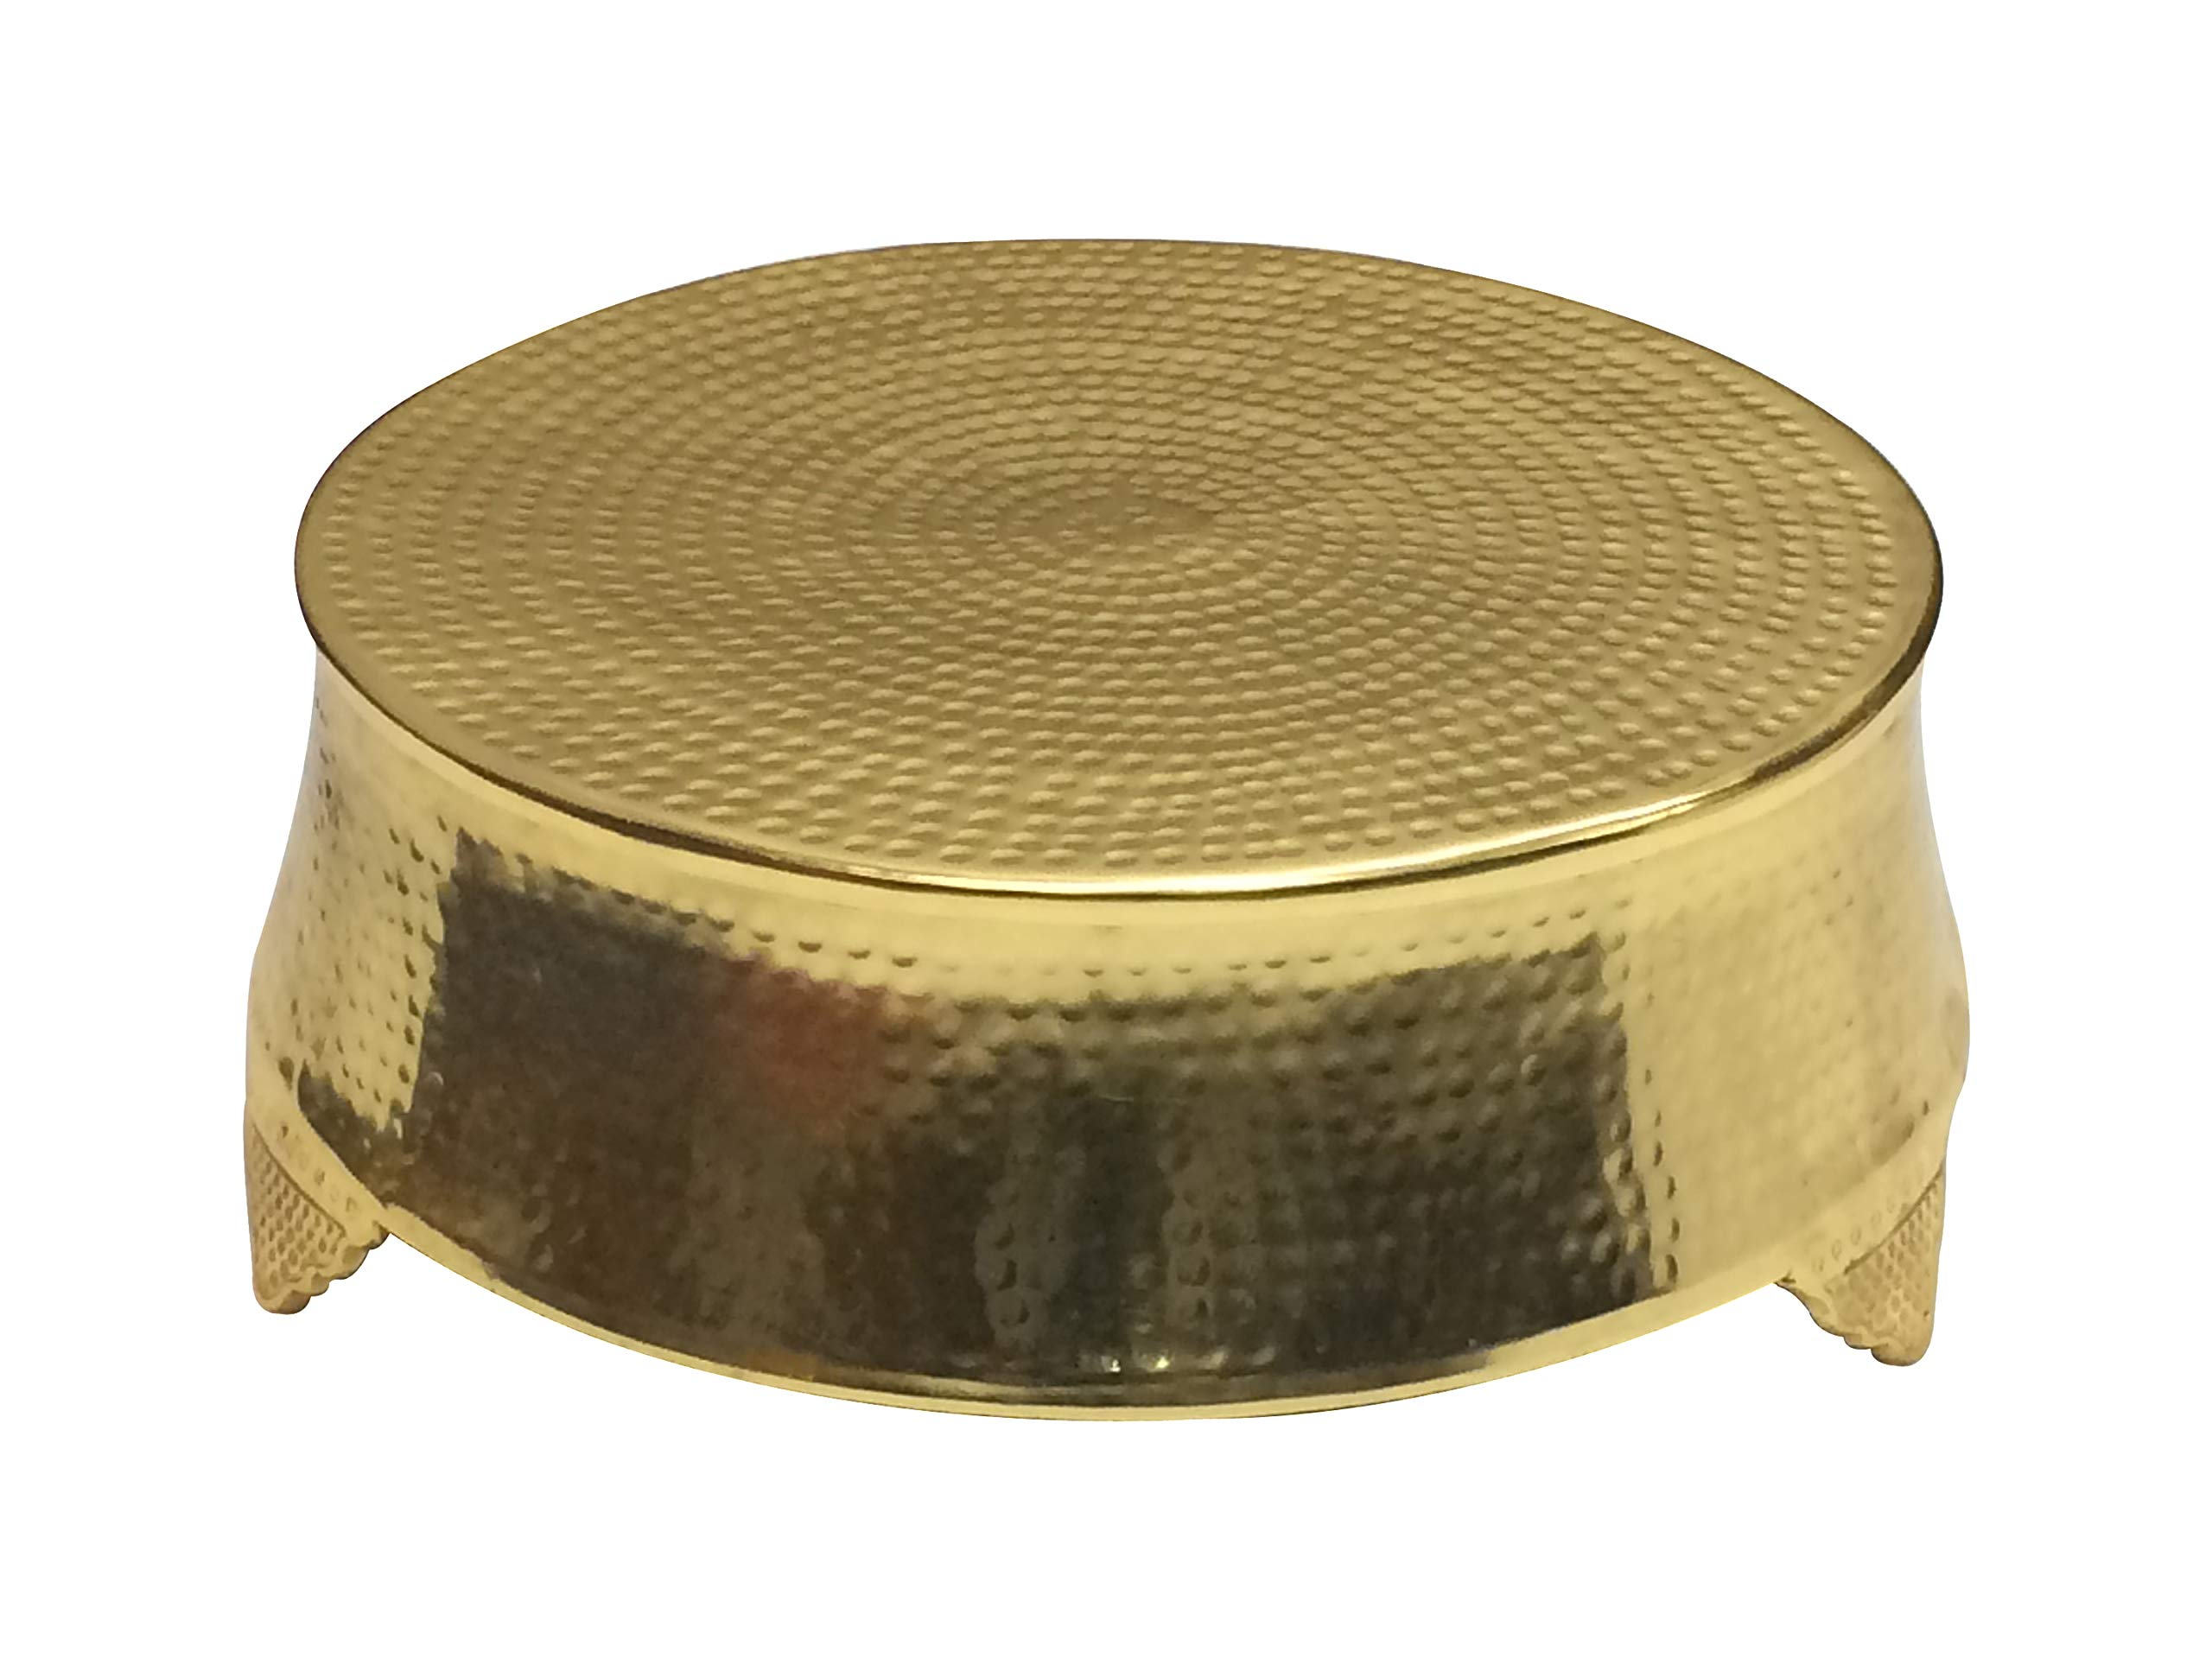 GiftBay Wedding Cake Stand Round 18'', Hammered Design, Gold Finish, Aluminum with Unique Tapered Sides